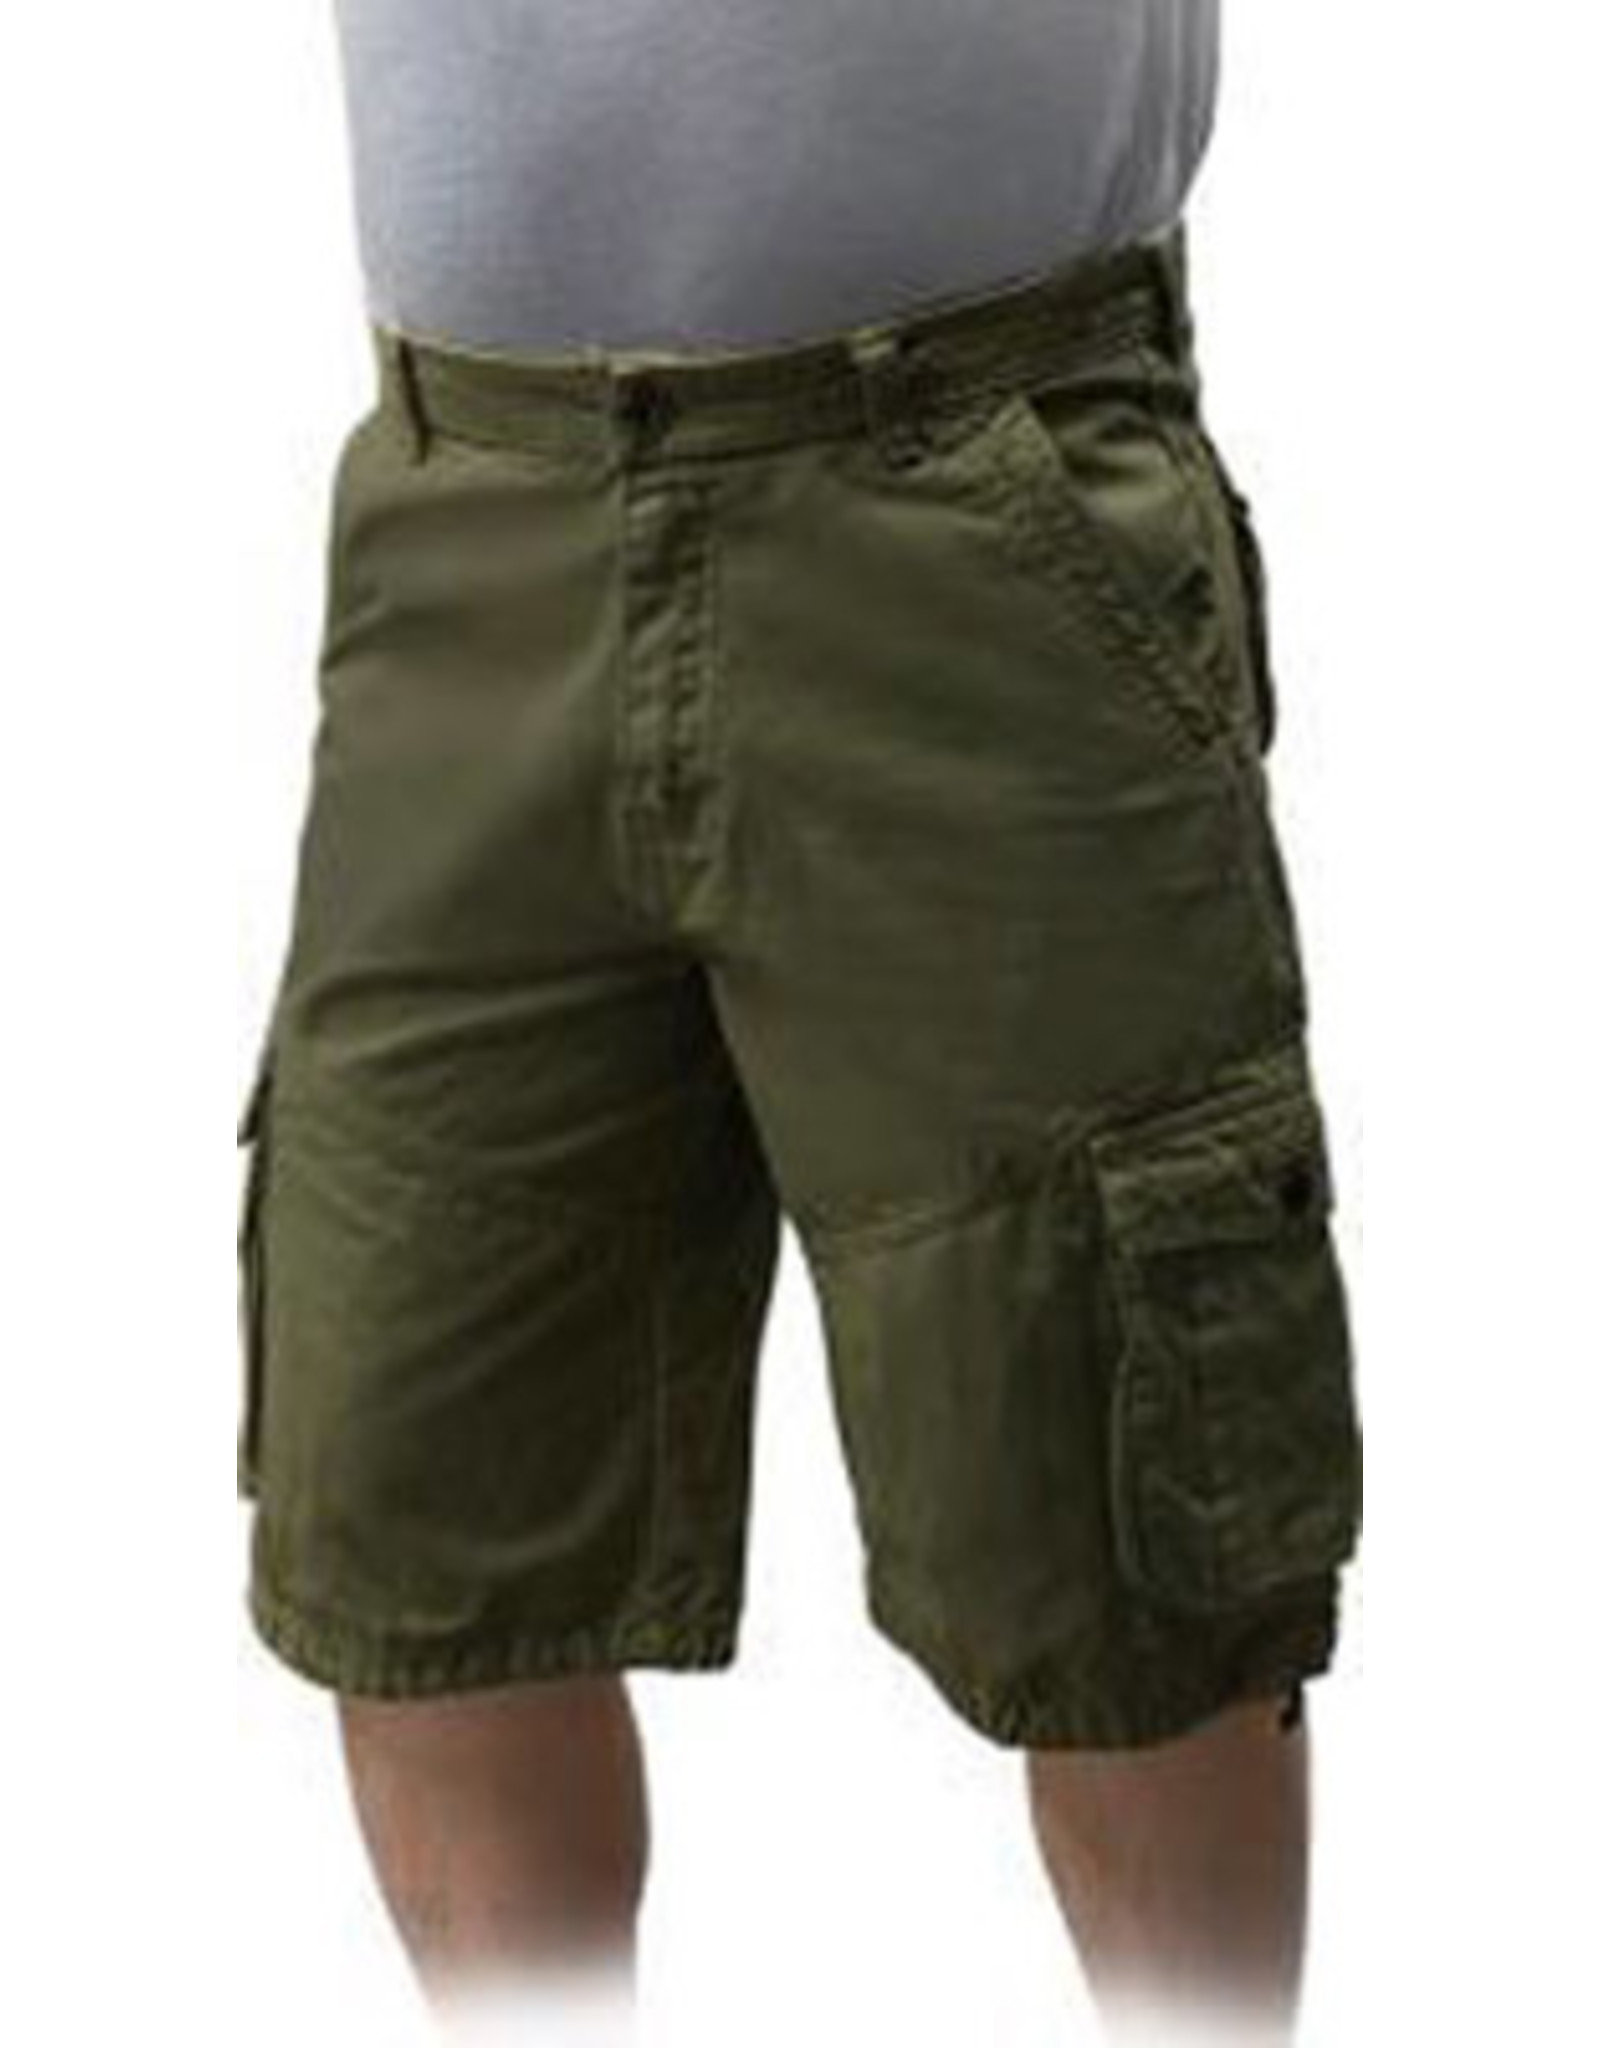 WORLD FAMOUS SALES MUSKOKA SHORTS